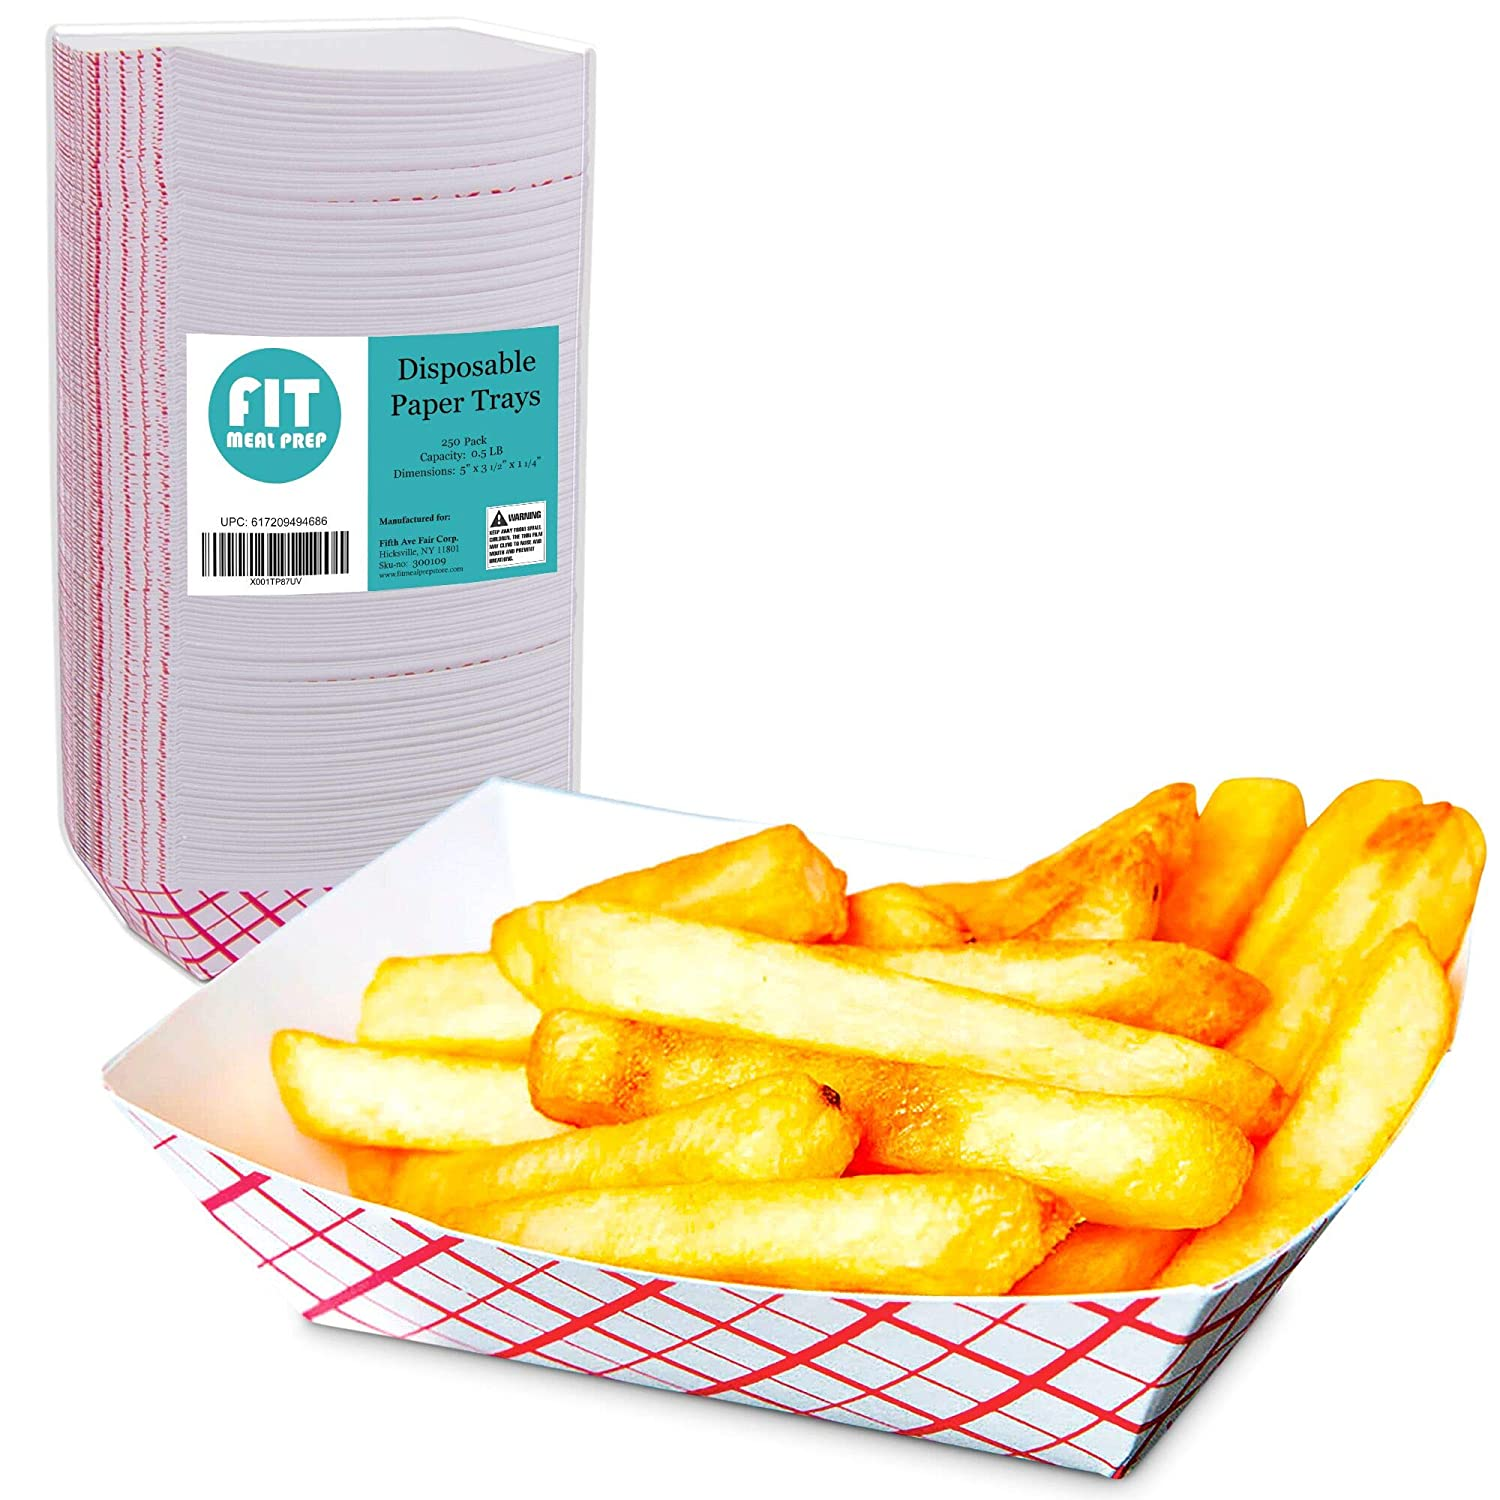 [250 Pack] 0.5 lb Heavy Duty Disposable Red Check Paper Food Trays Grease Resistant Fast Food Paperboard Boat Basket for Parties Fairs Picnics Carnivals, Holds Tacos Nachos Fries Hot Corn Dogs